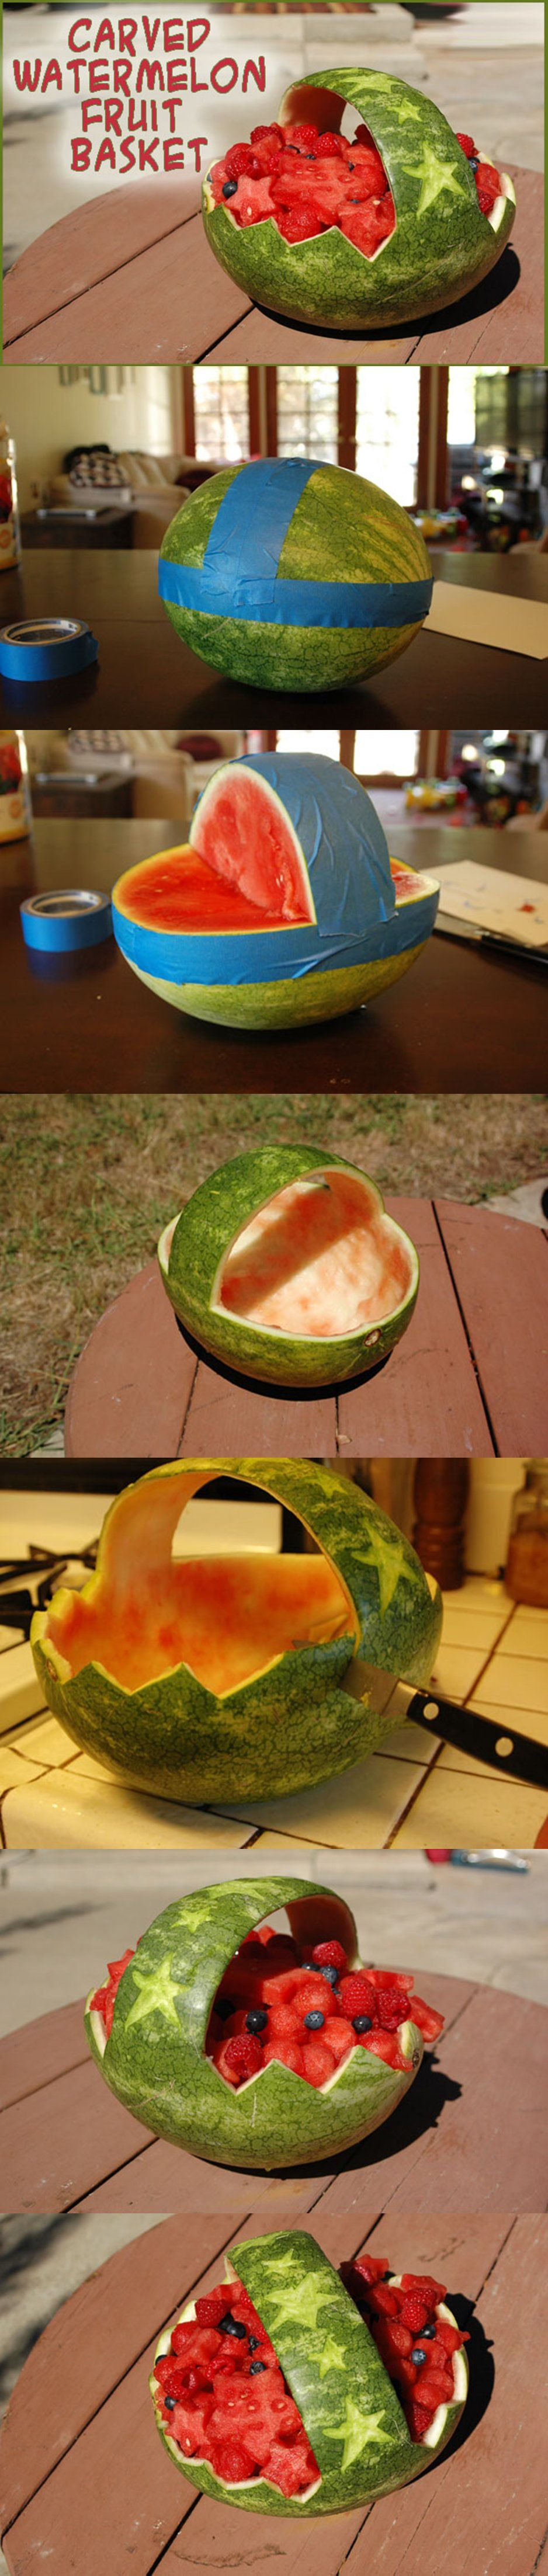 10 Watermelon Carving Ideas and Tutorials